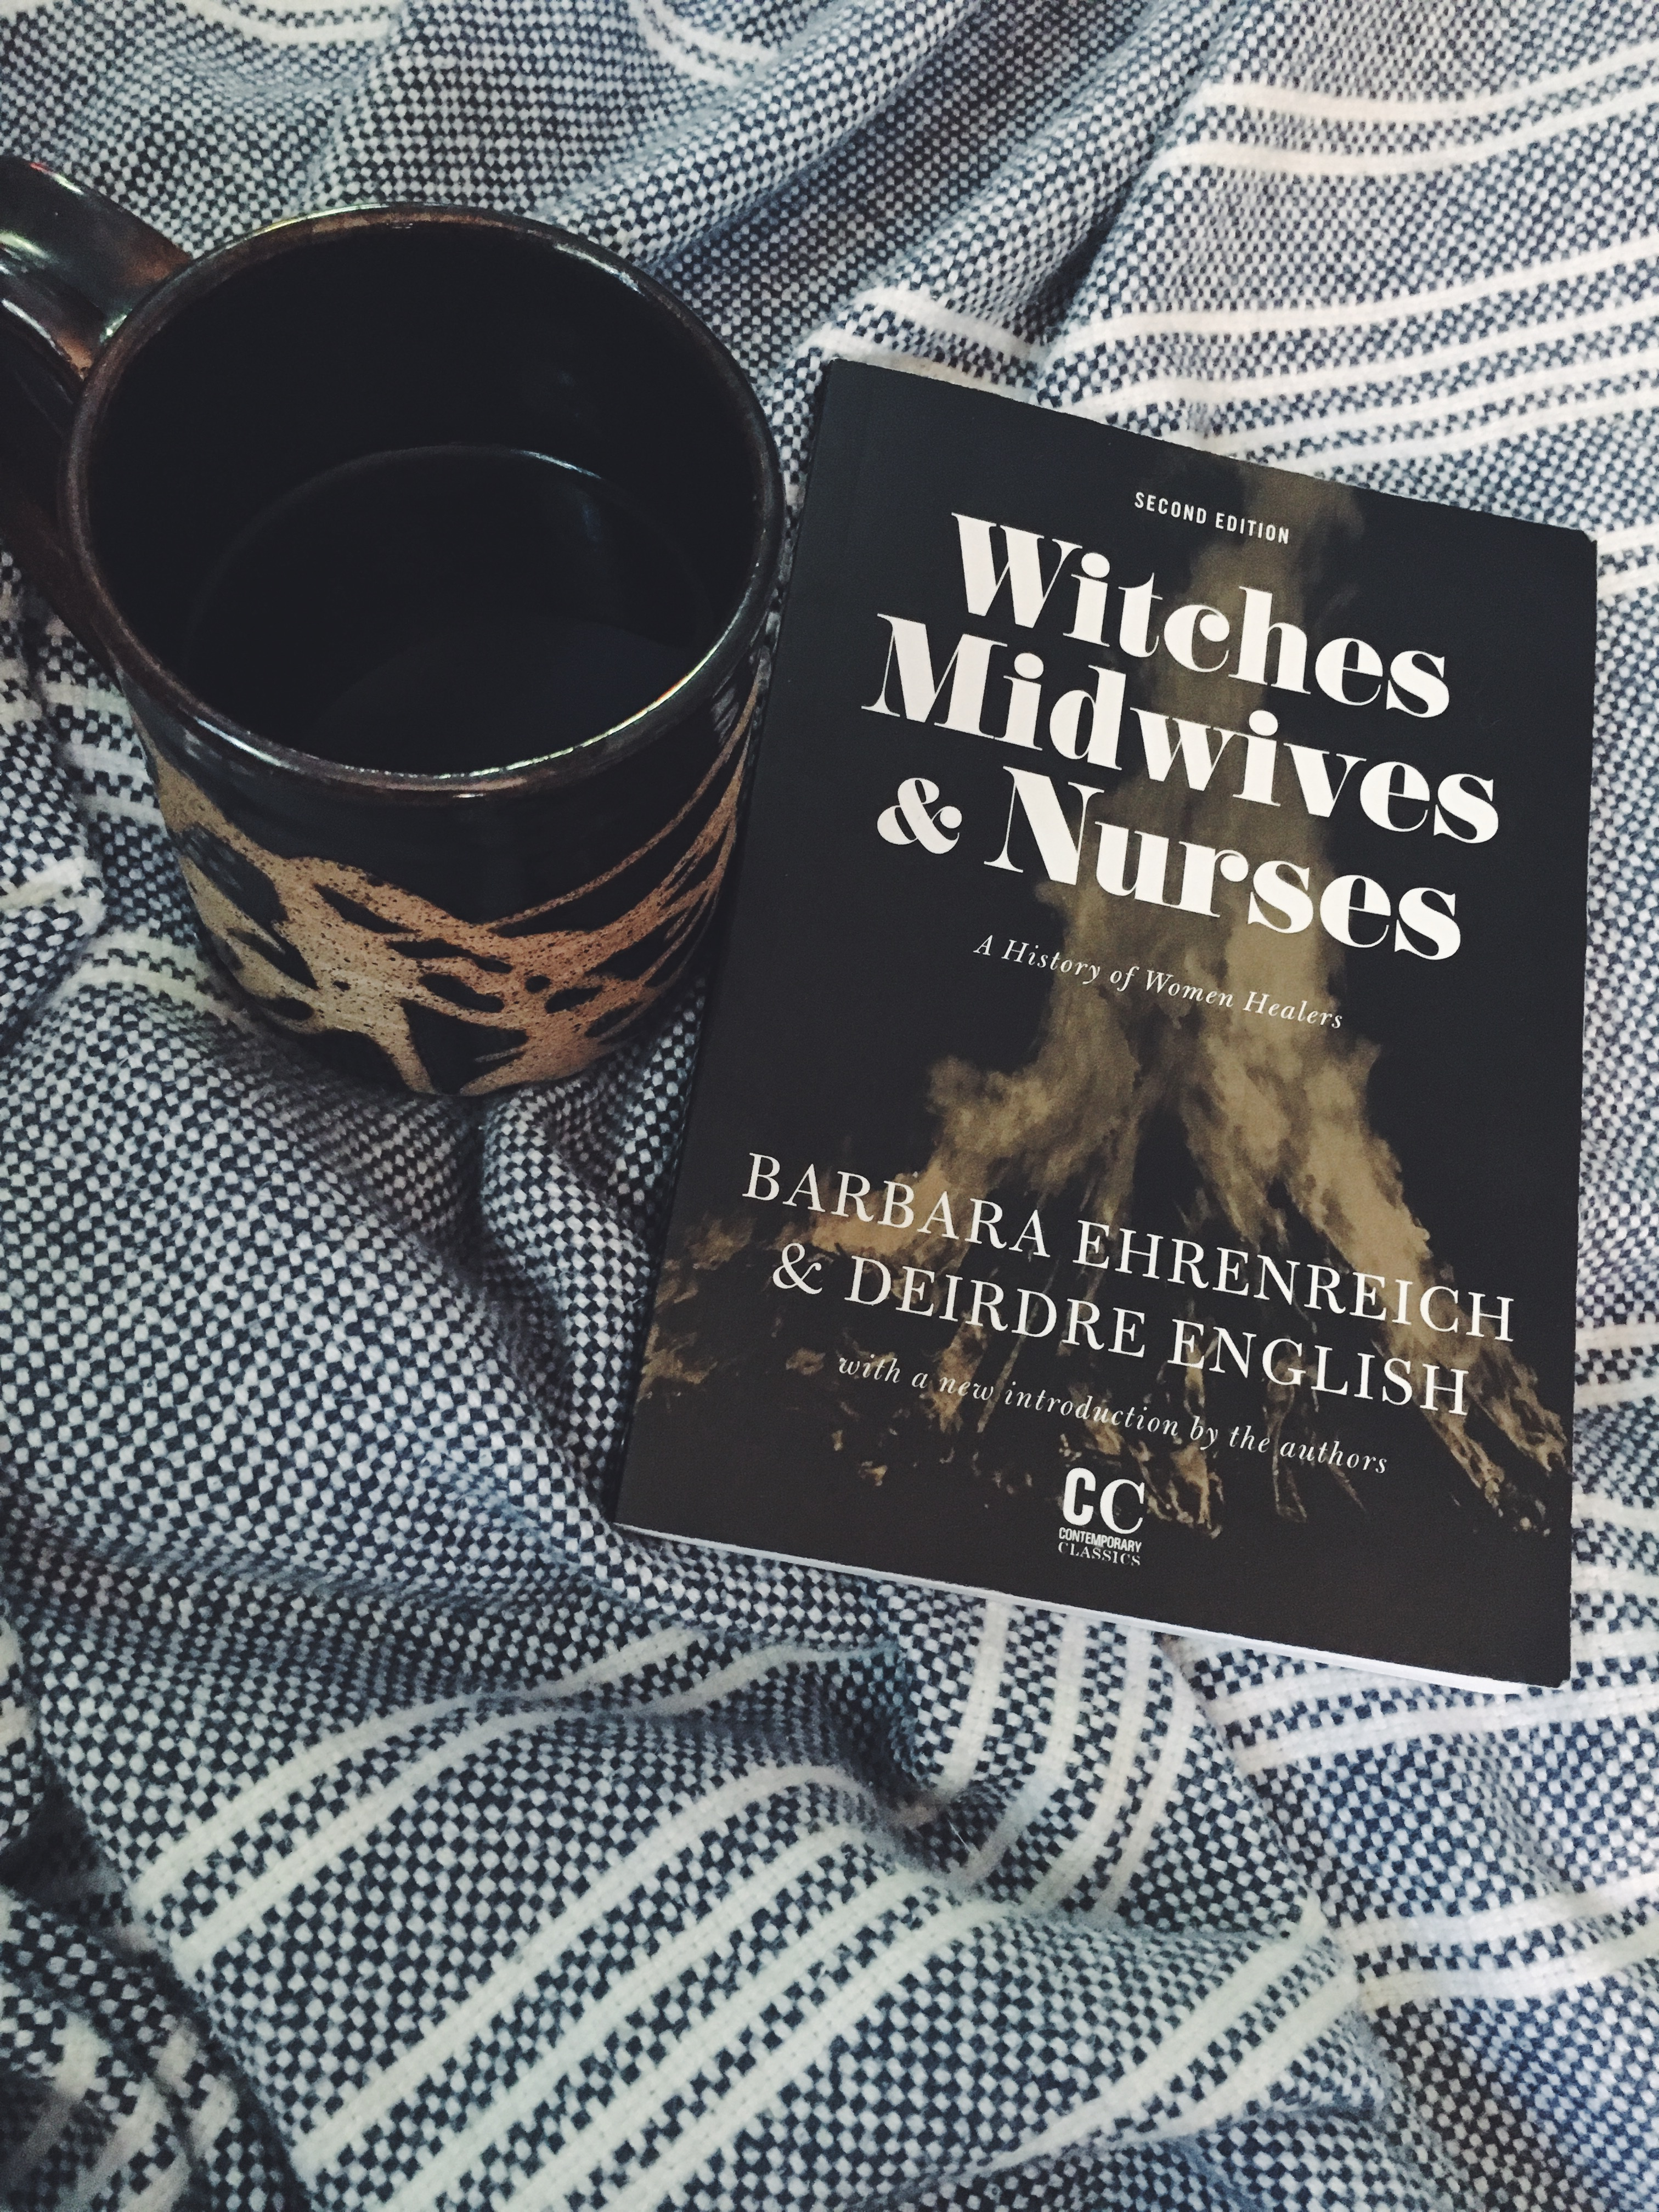 Spellbook Saturday: Witches, Midwives & Nurses